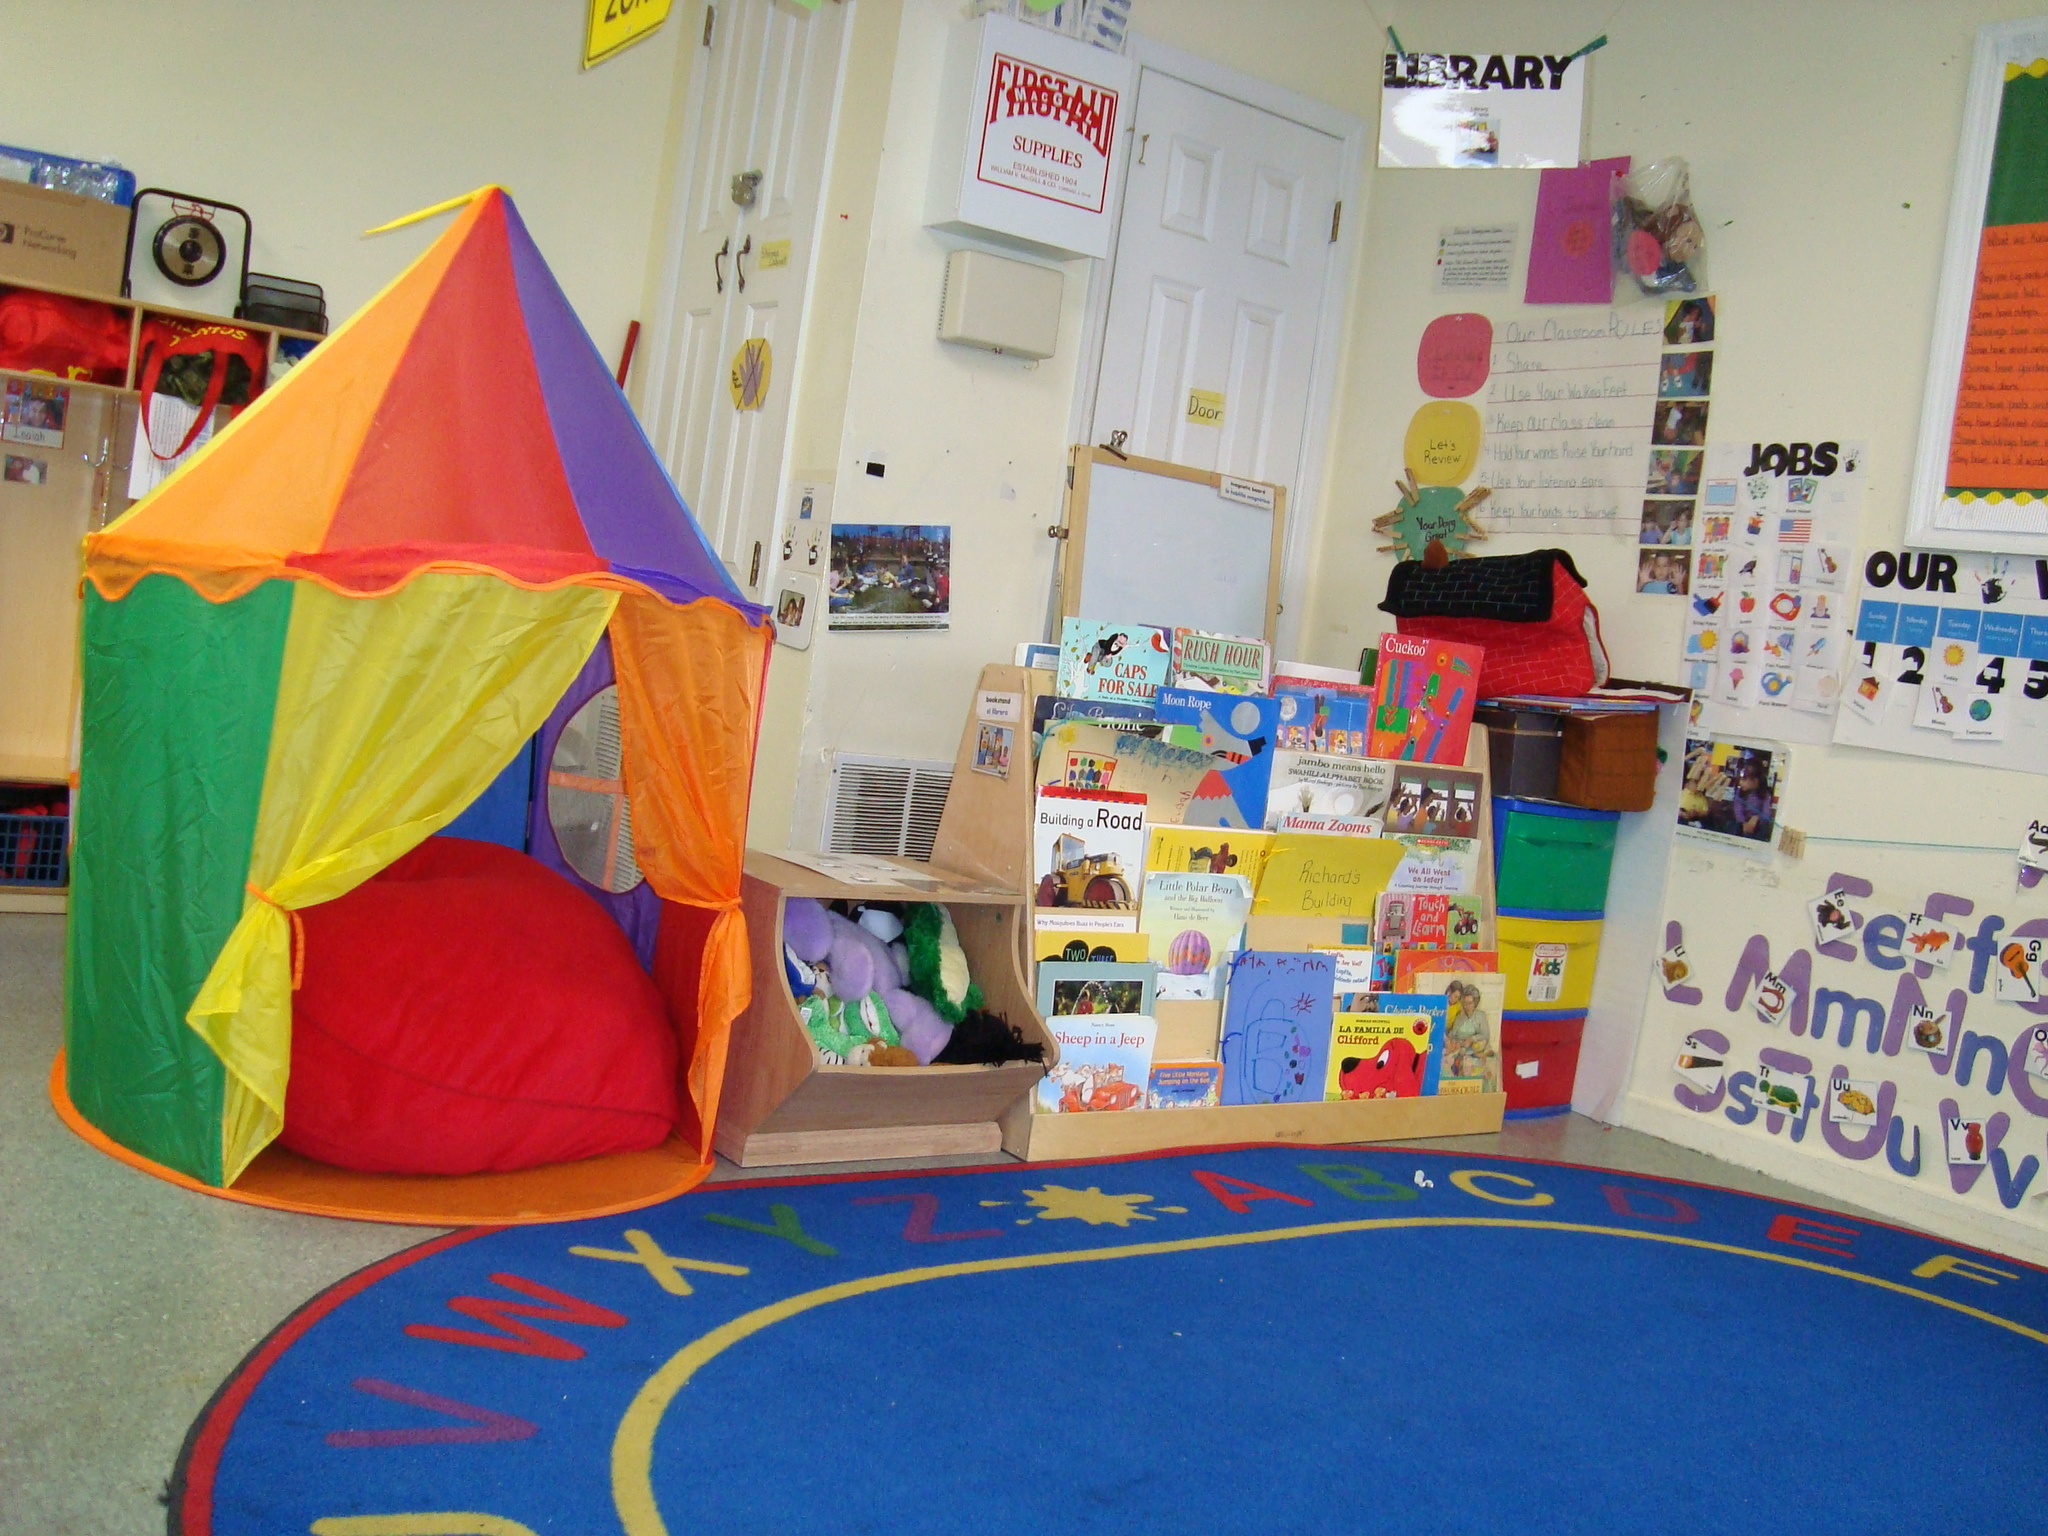 DIY Hula Hoop Tent via Hoosier Homemade & Classroom Reading Nook Ideas